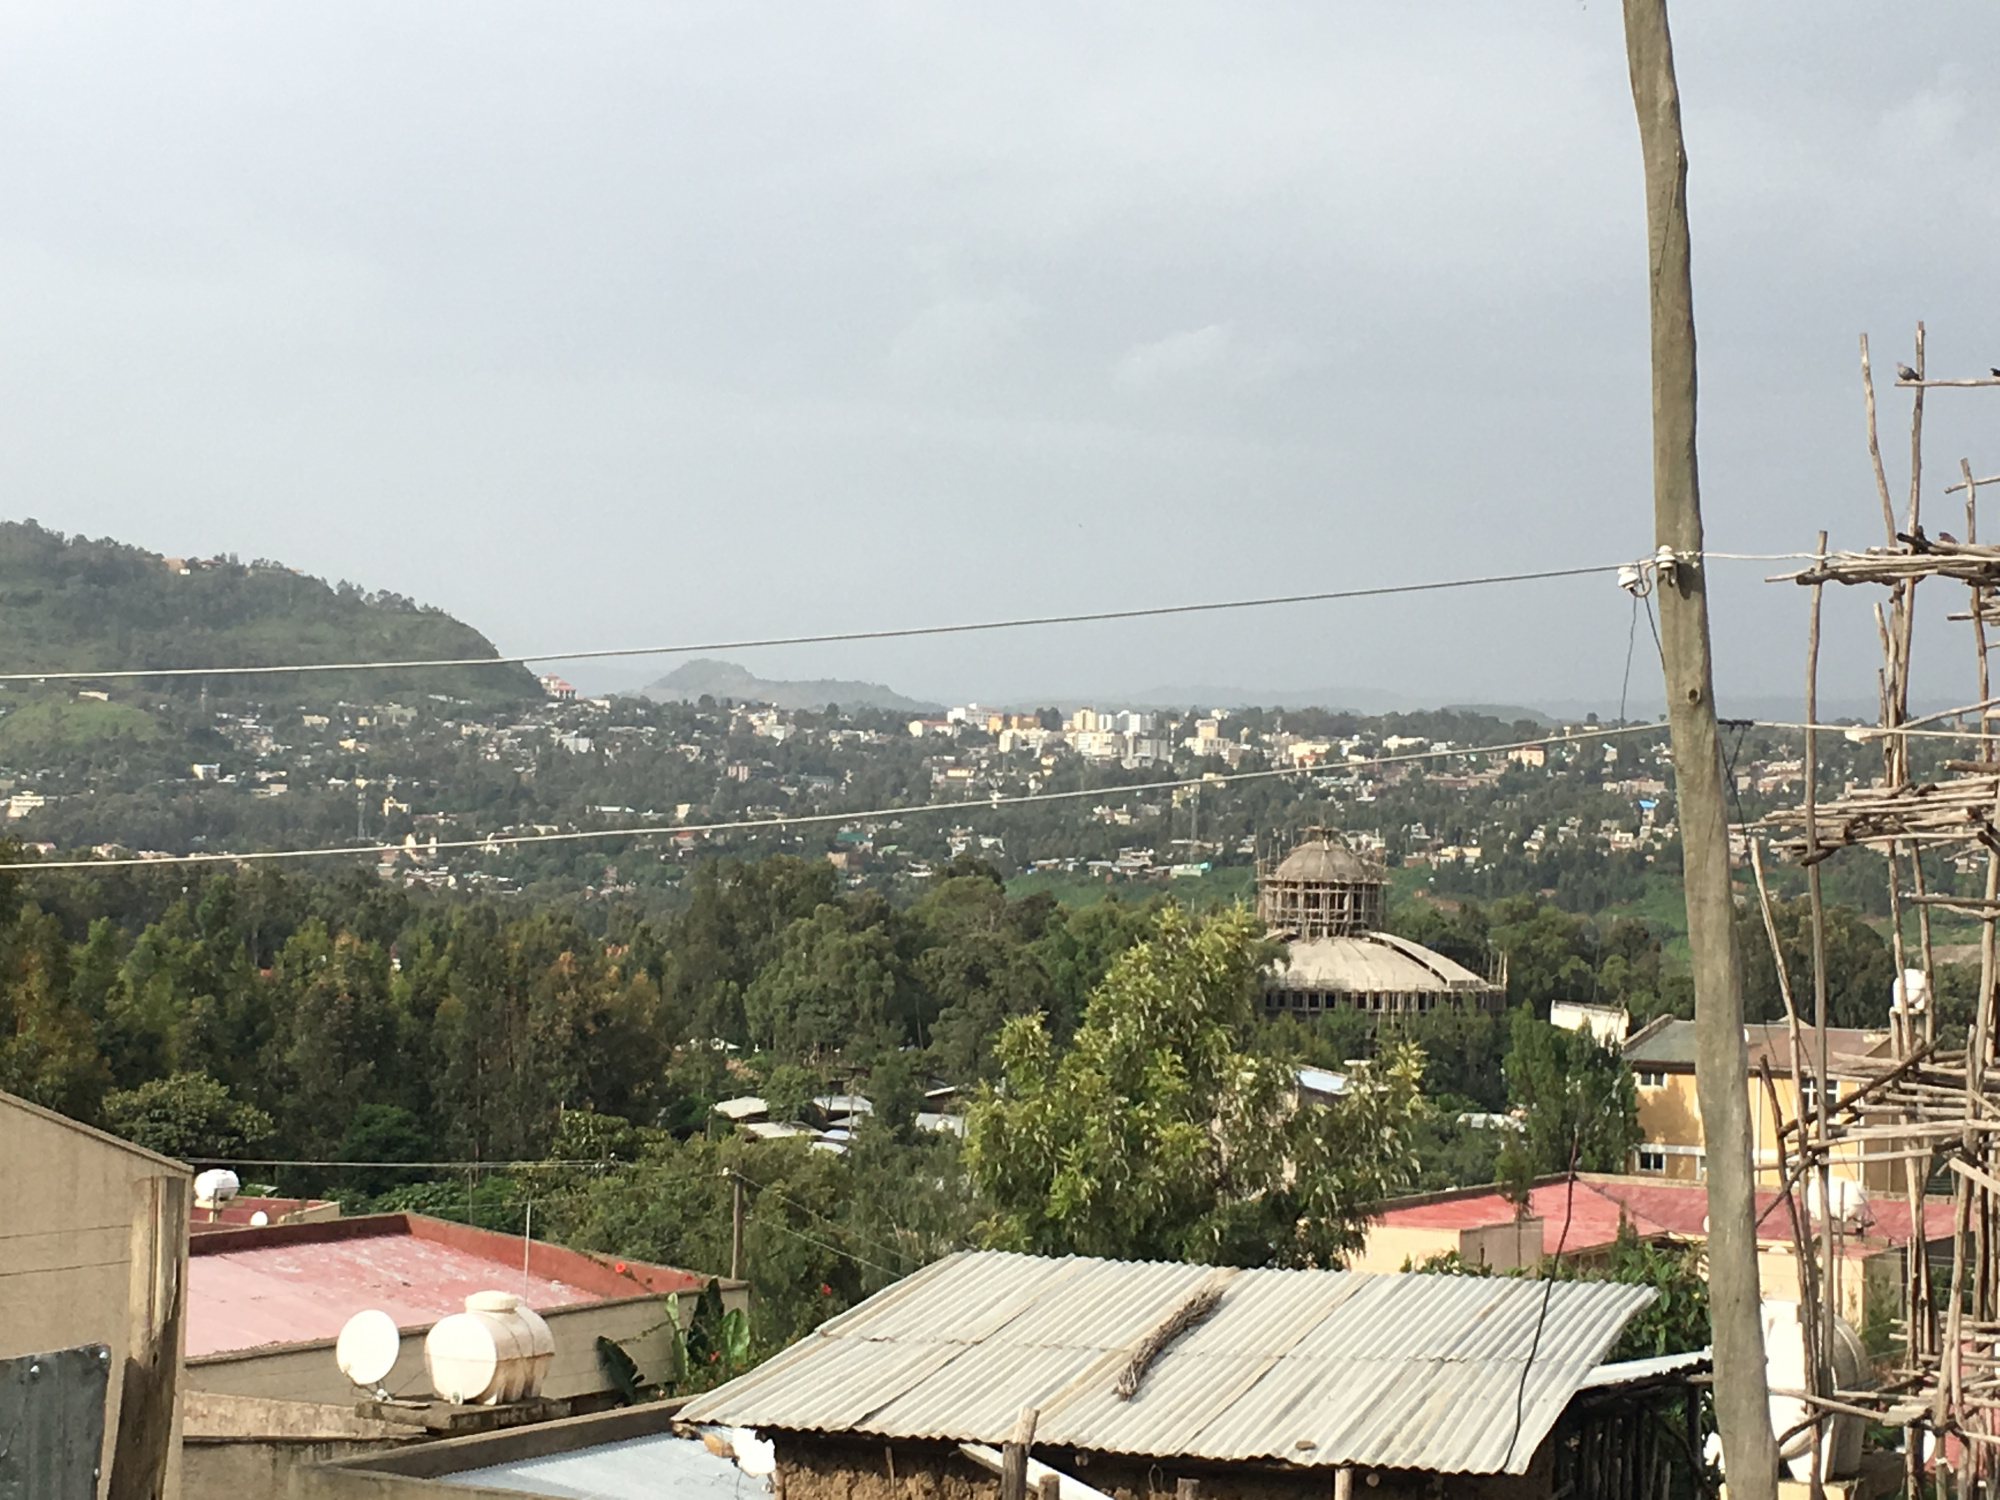 Gondar is hilly- and particularly green this time of year